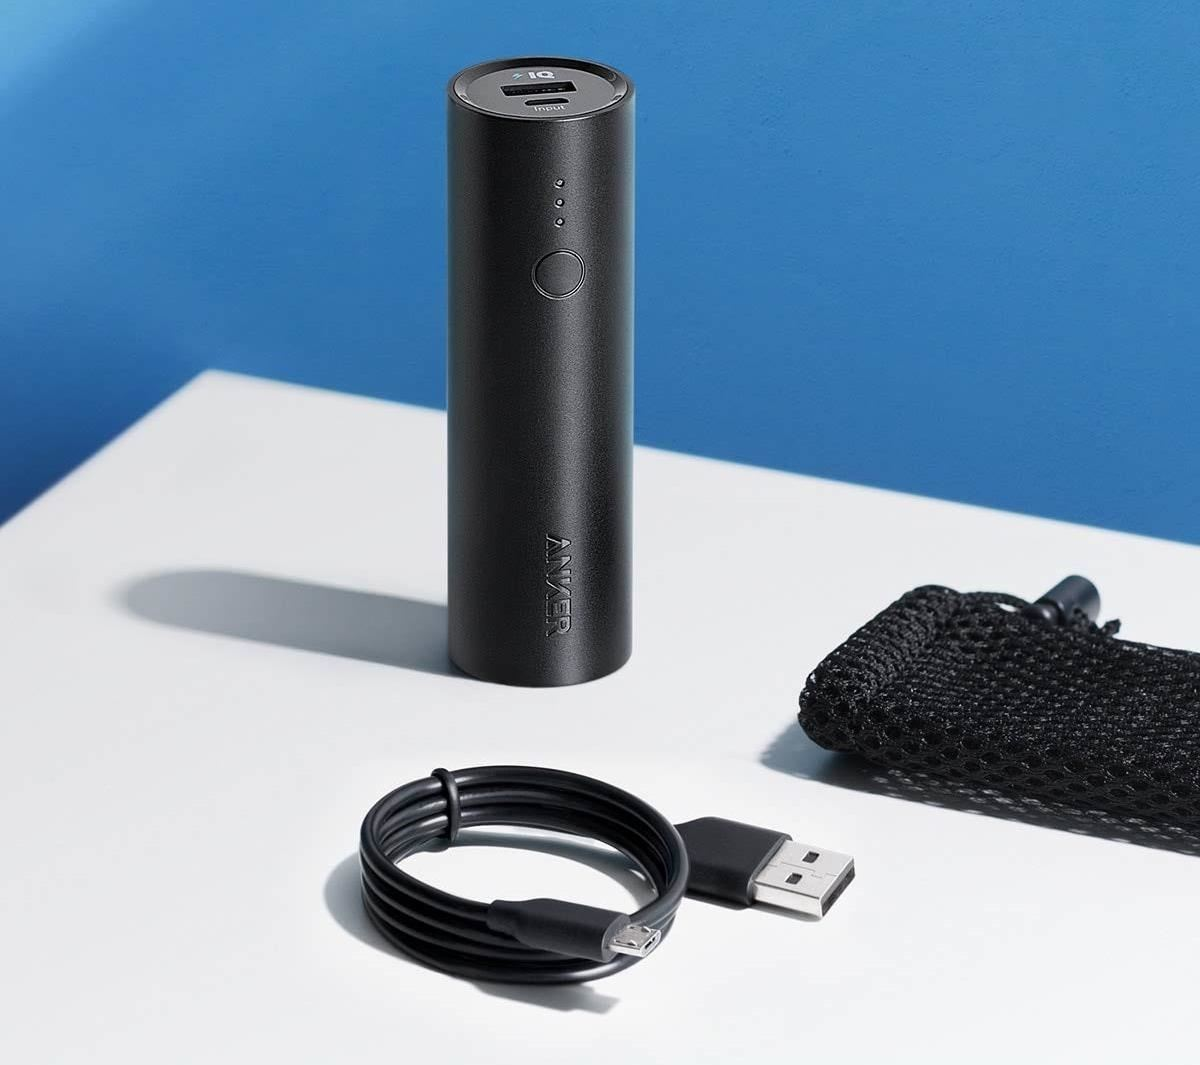 2019 Gift Guide: Must-Have Smartphone Accessories for the Traveler